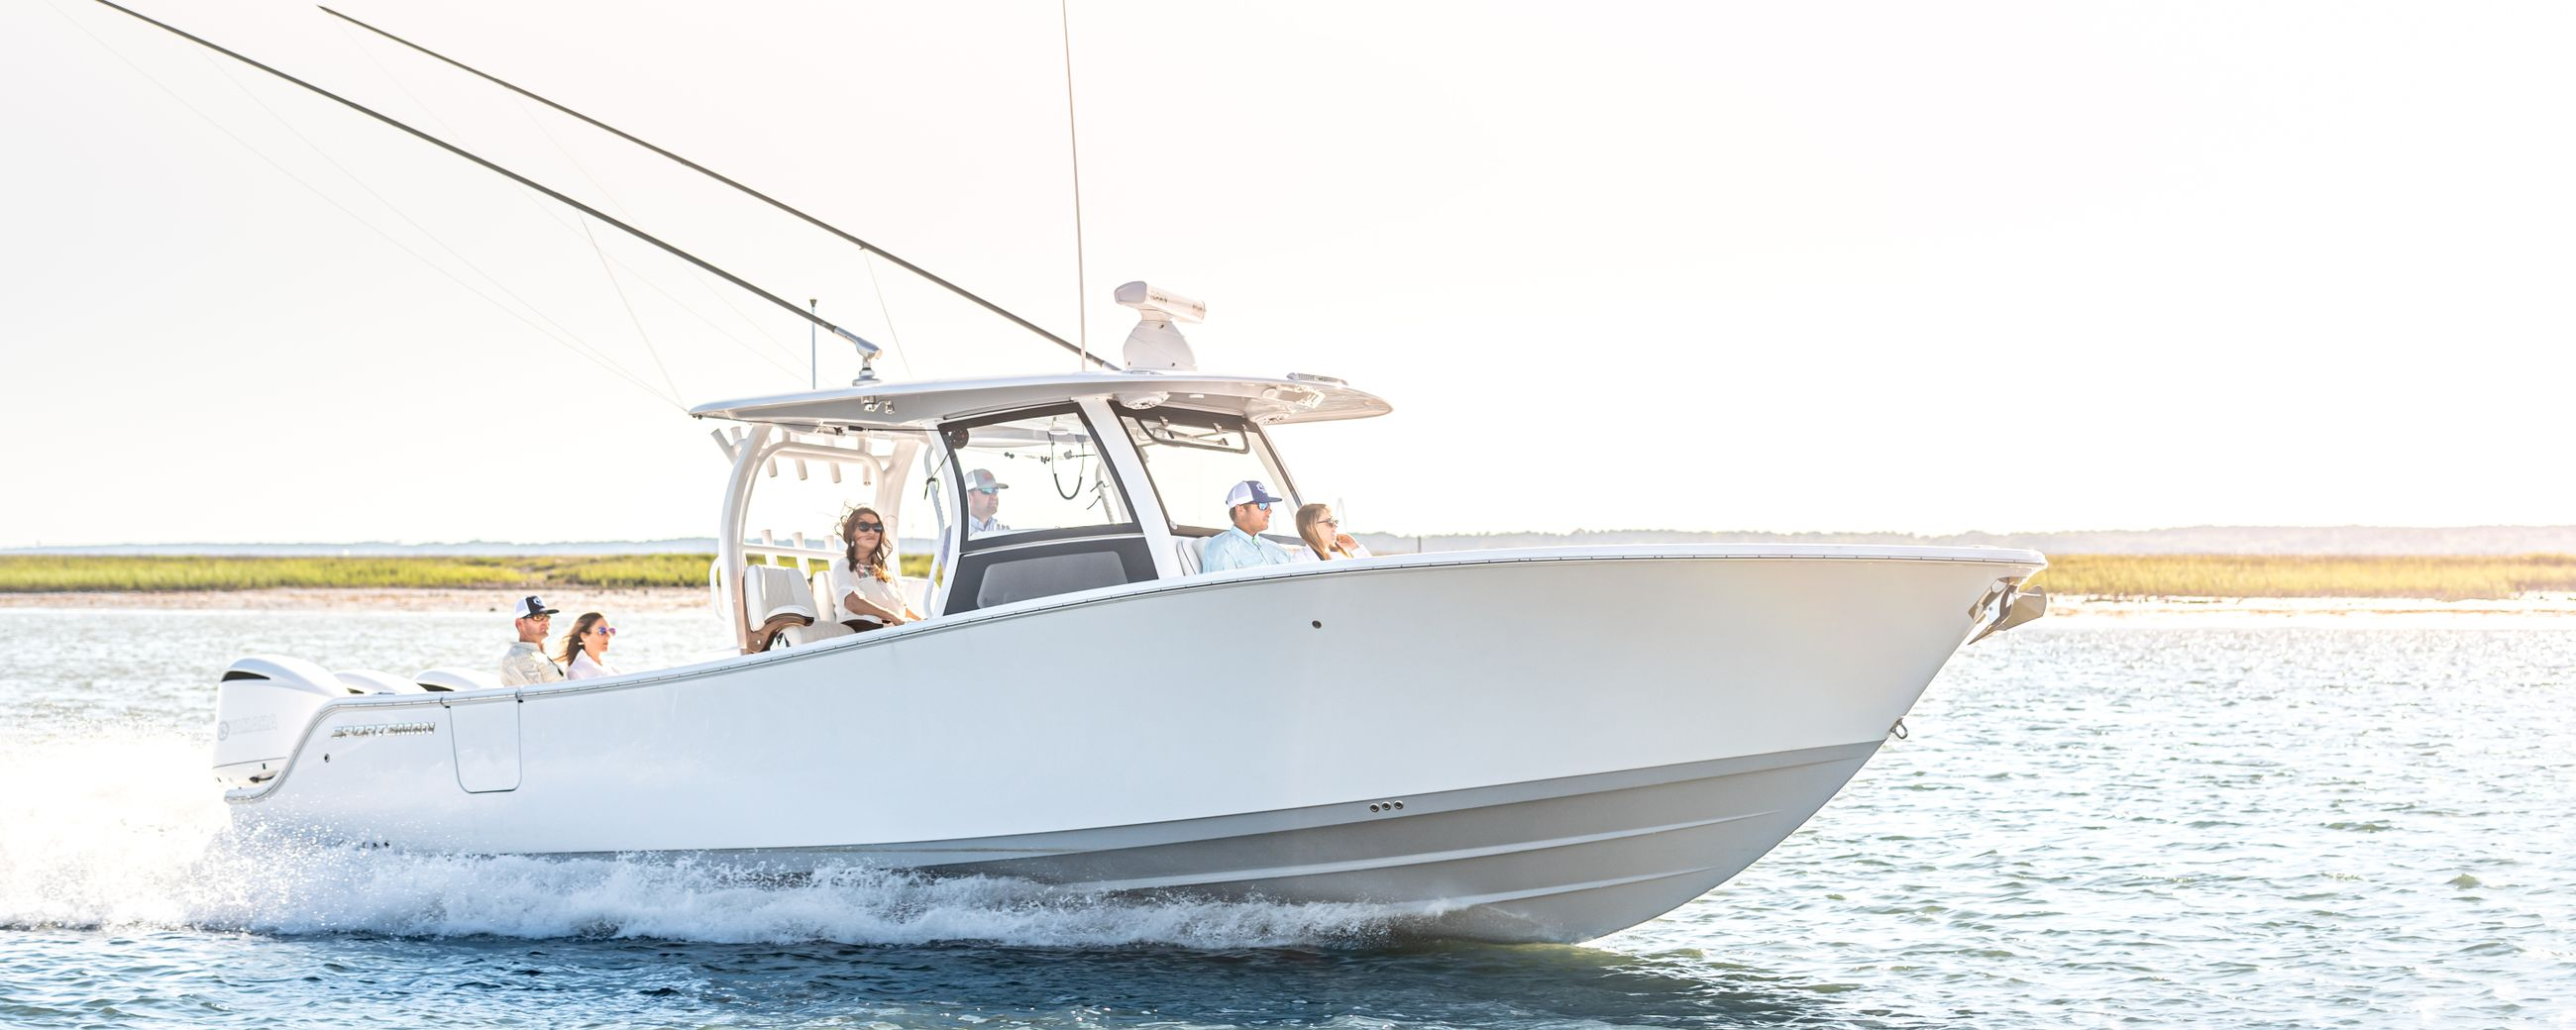 The all-new Open 352 Center Console running on the water with a family on board